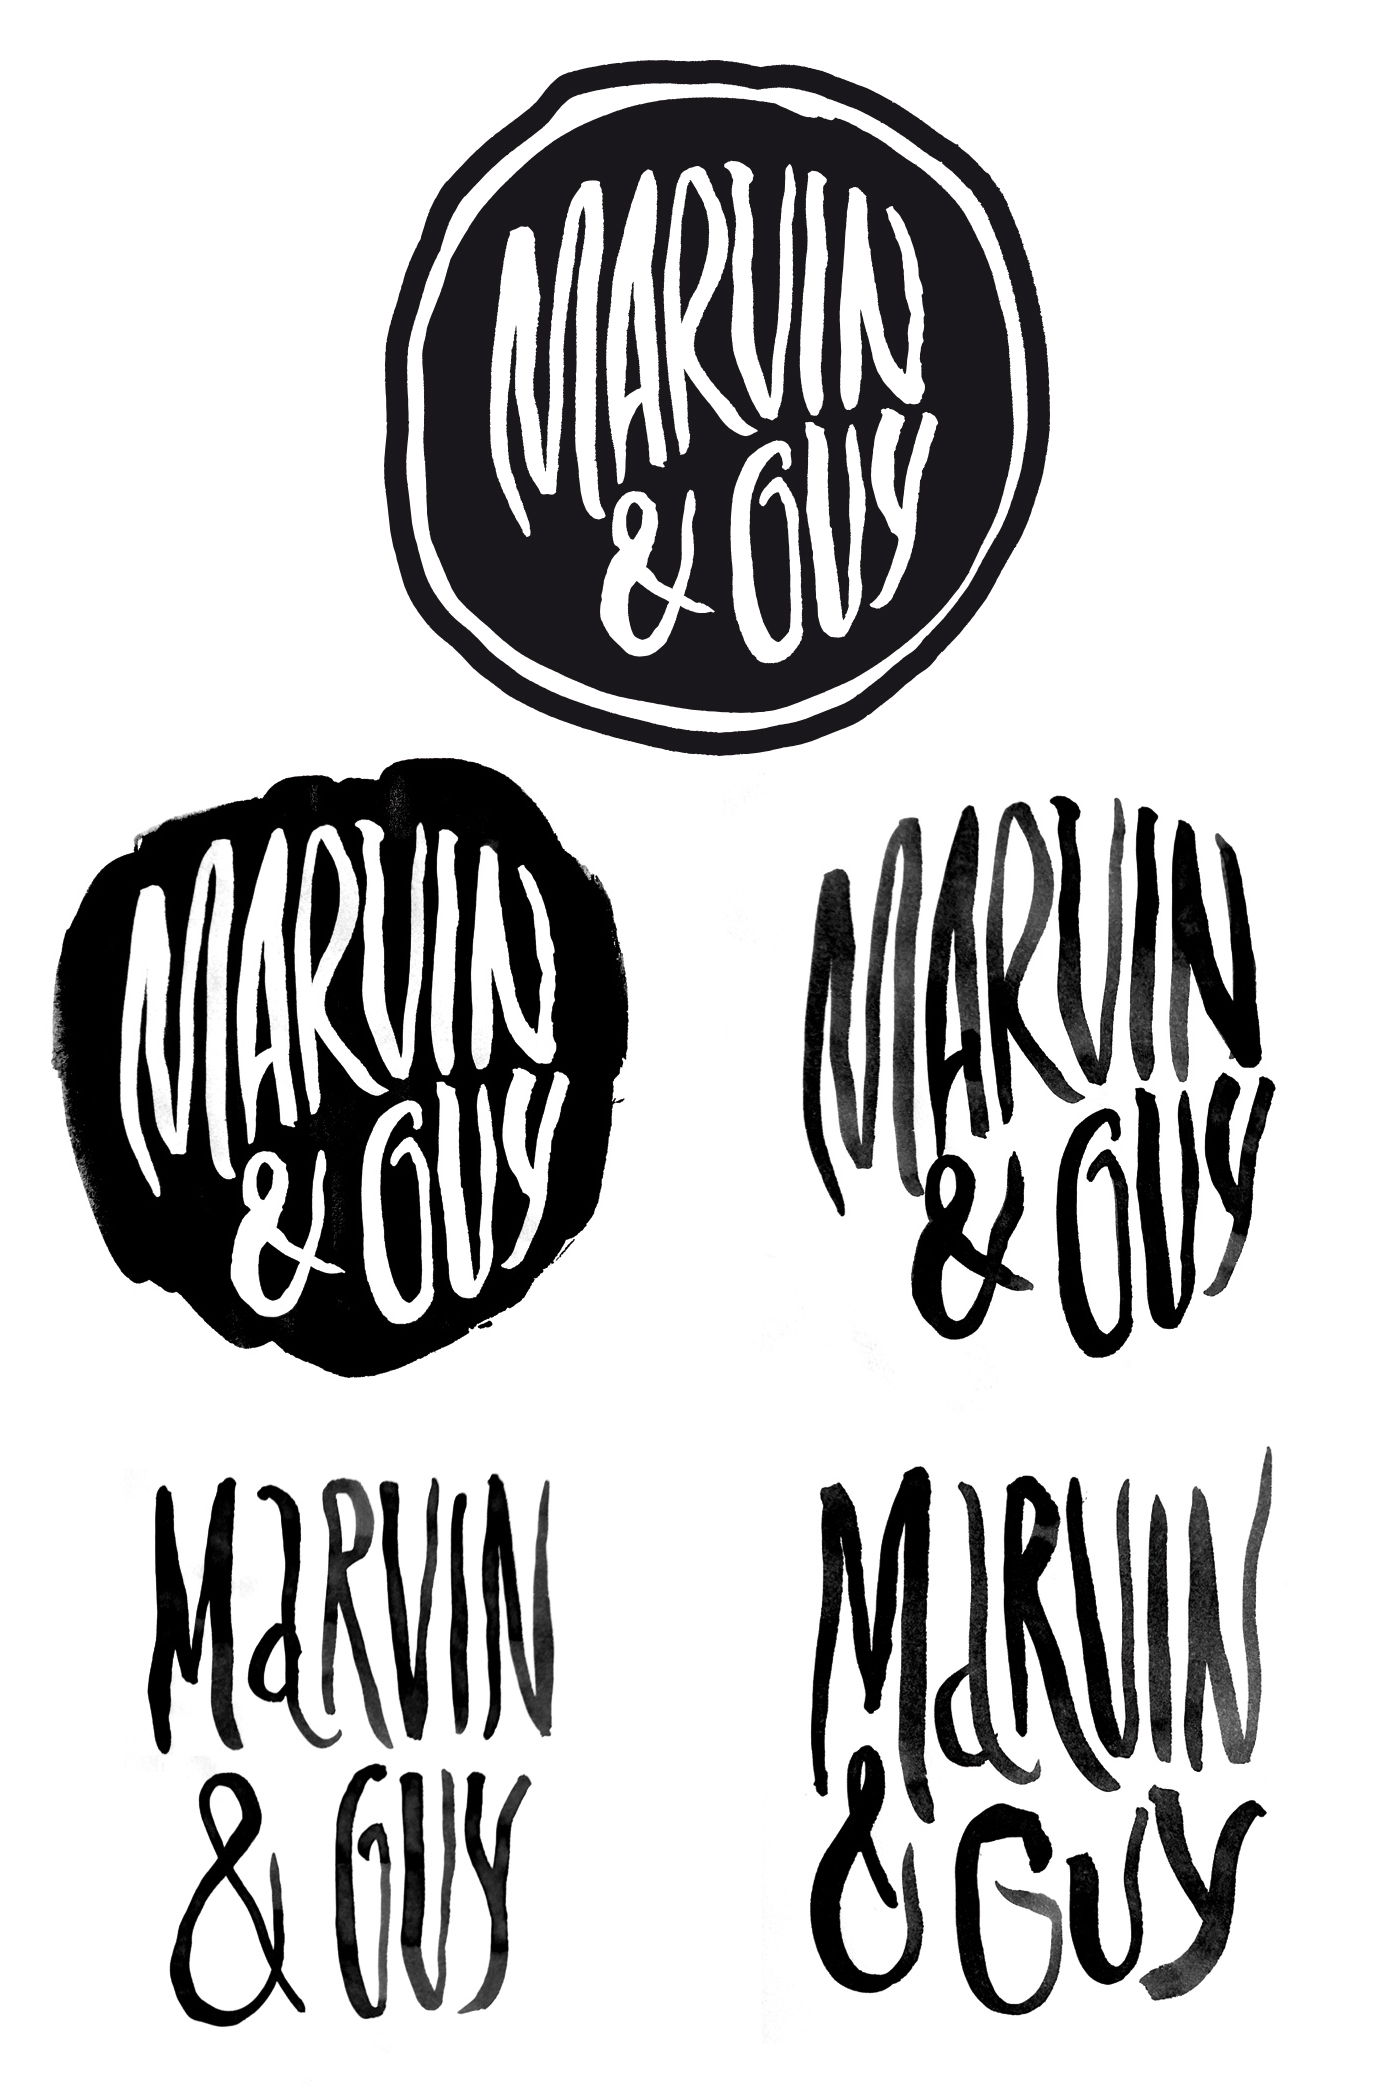 marvin&guy_logo_sketches